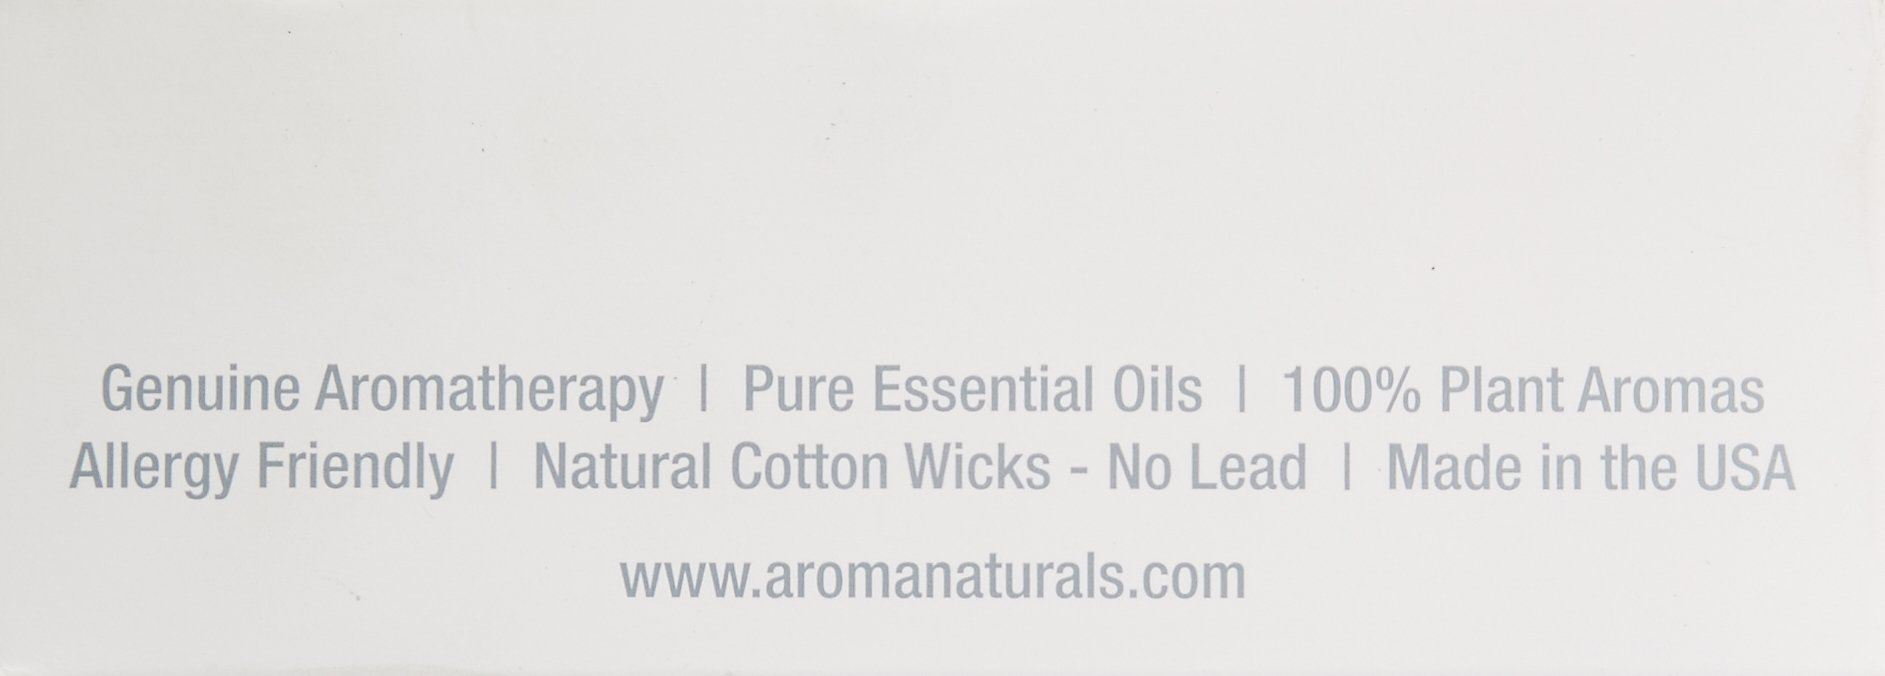 Aroma Naturals Ambiance Votive Candle, Yellow/Orange/Lemongrass, 6 Count by Aroma Naturals (Image #2)